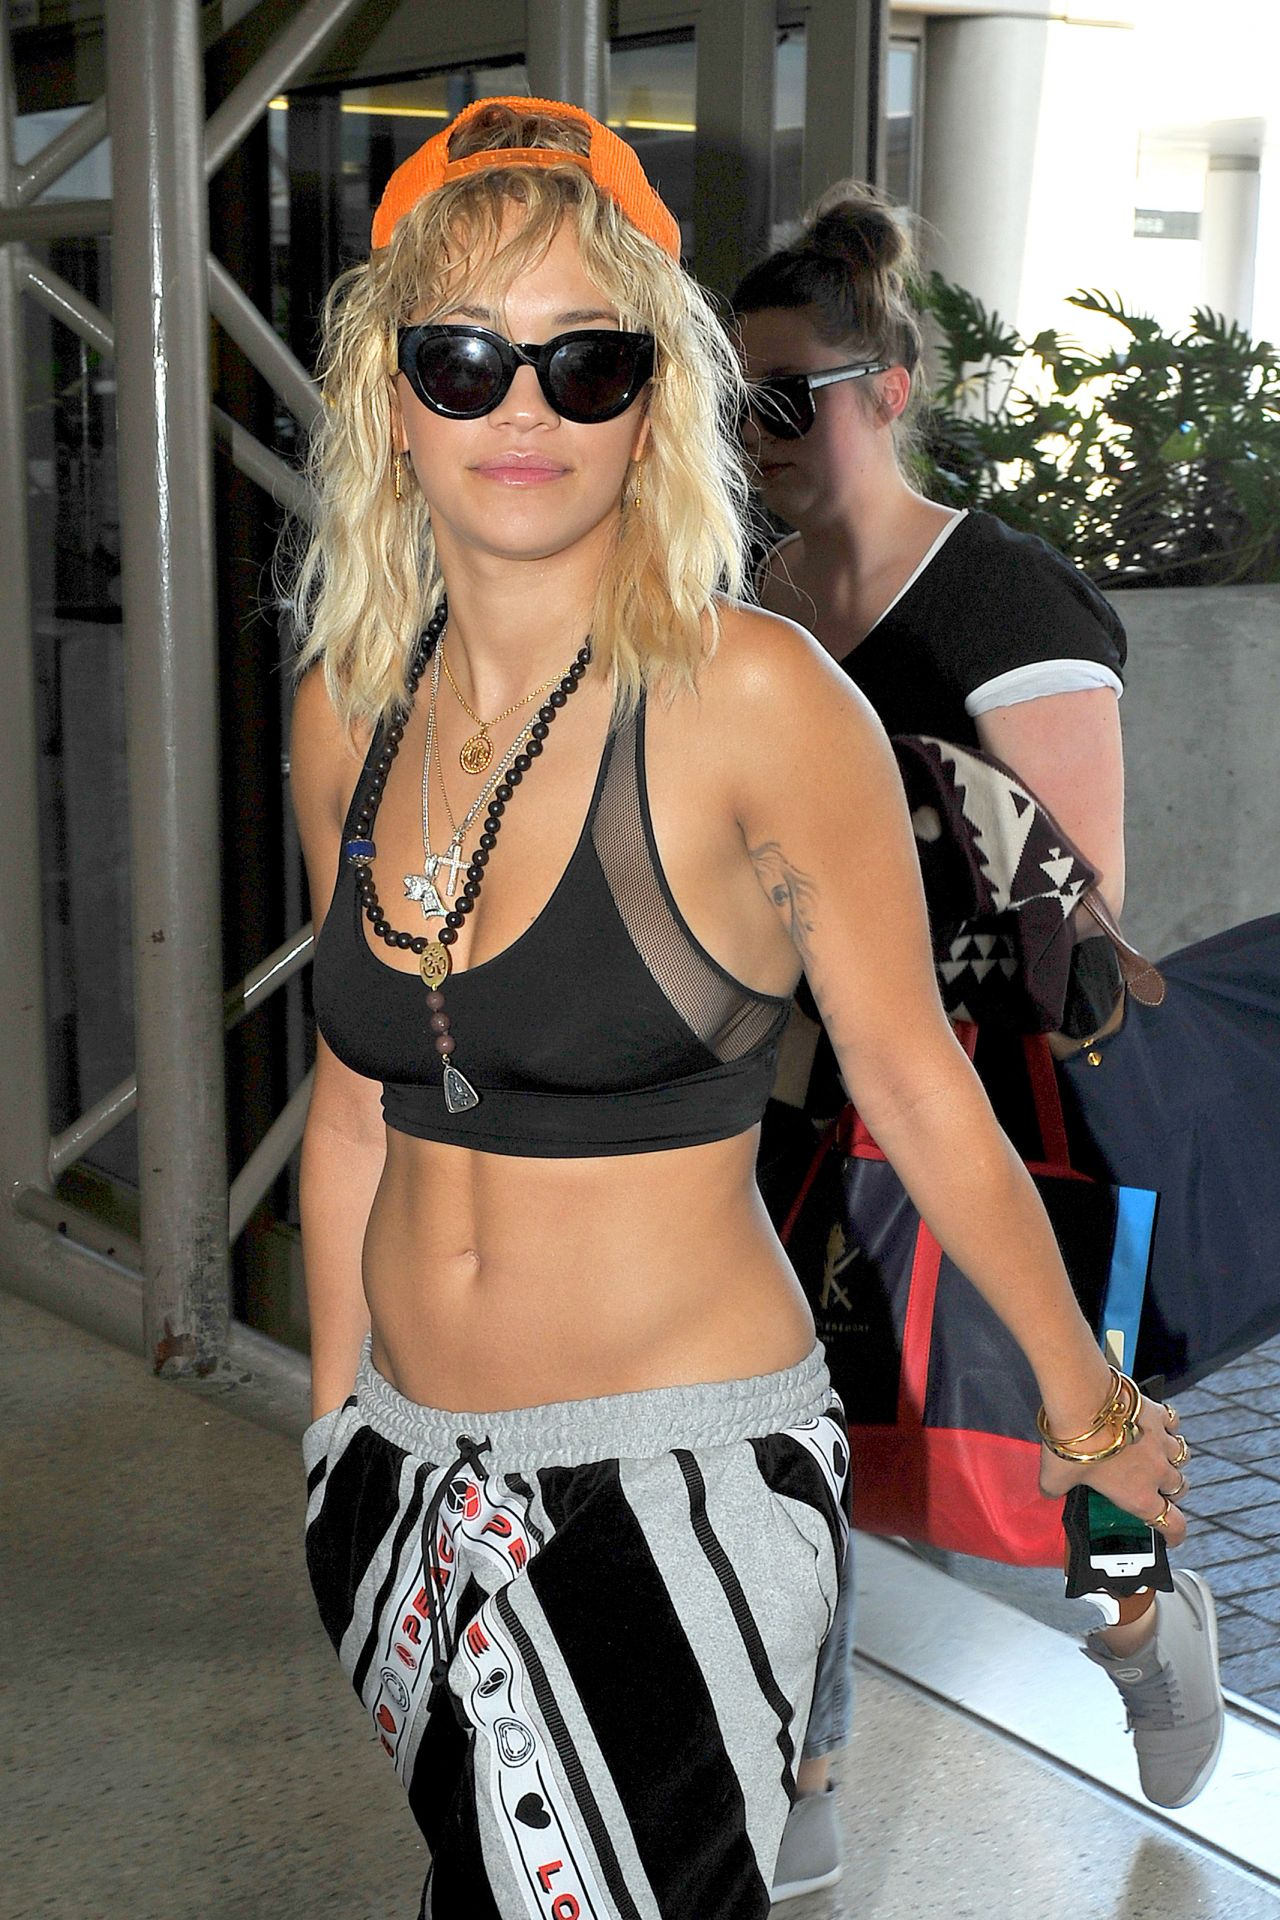 Rita Ora at LAX Airport in Los Angeles - July 2014